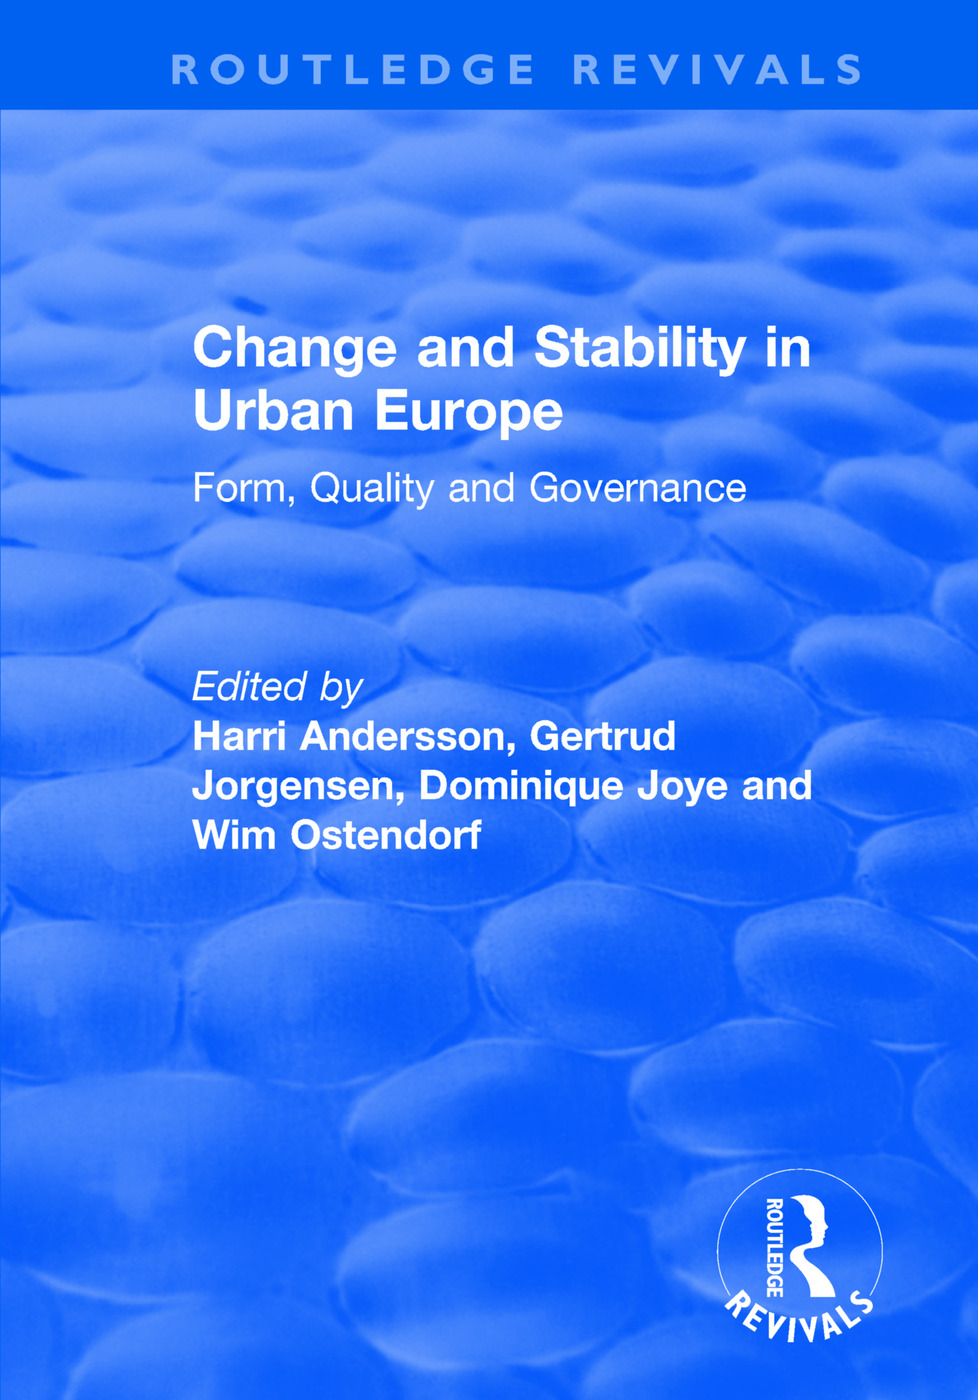 Change and Stability in Urban Europe